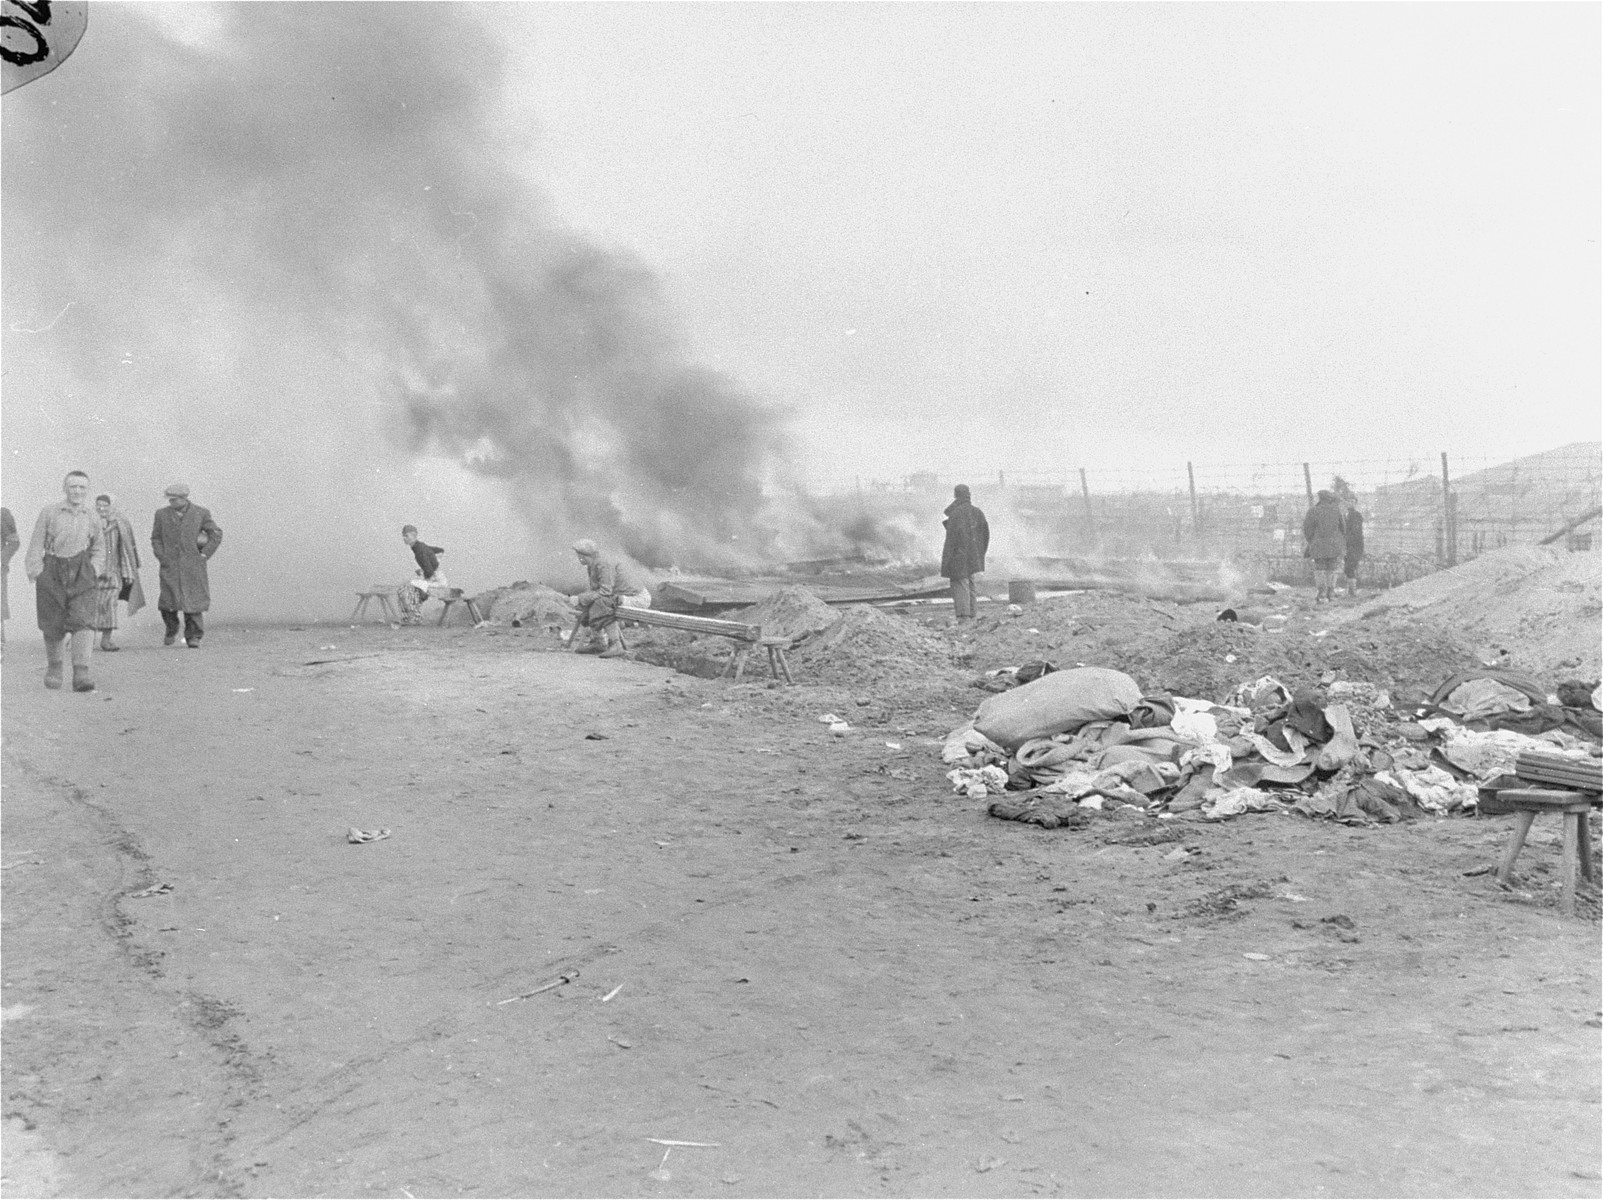 Billows of smoke rise up to the sky from typhus-infested barracks in Bergen-Belsen that have been torched by the British military.  A group of survivors move about just in front of the smoke.